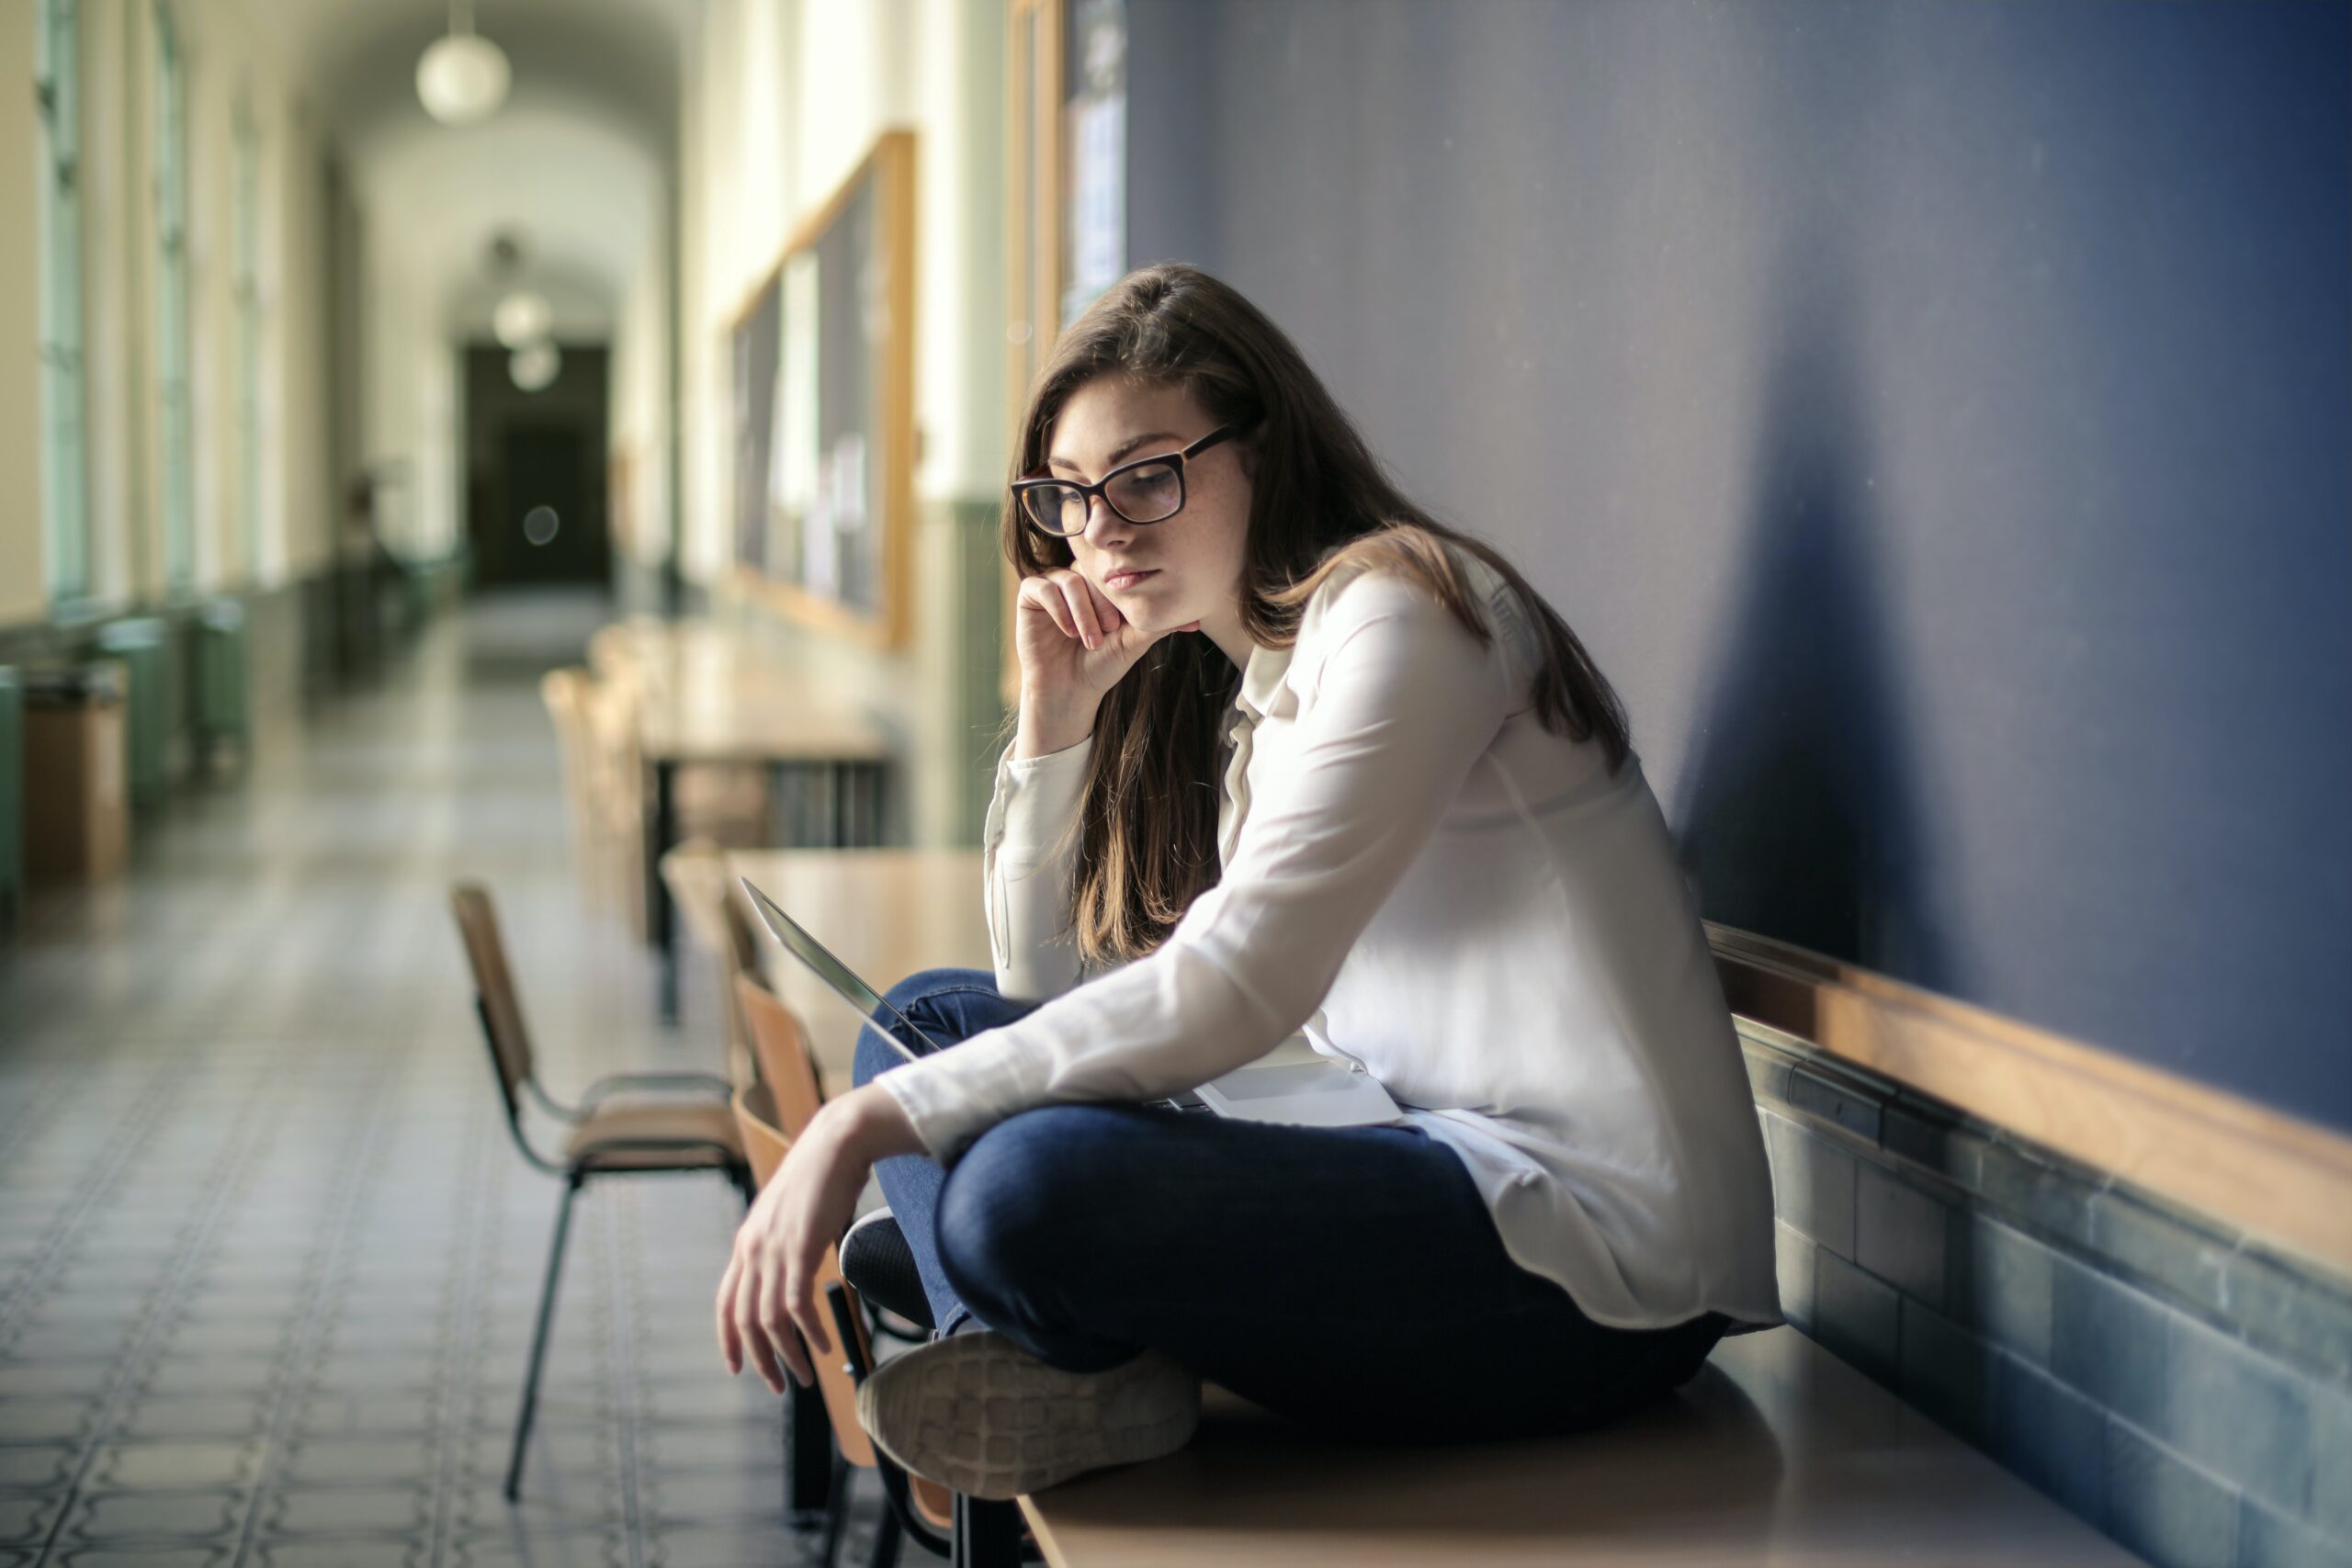 sad person sitting alone on bench in school hallway